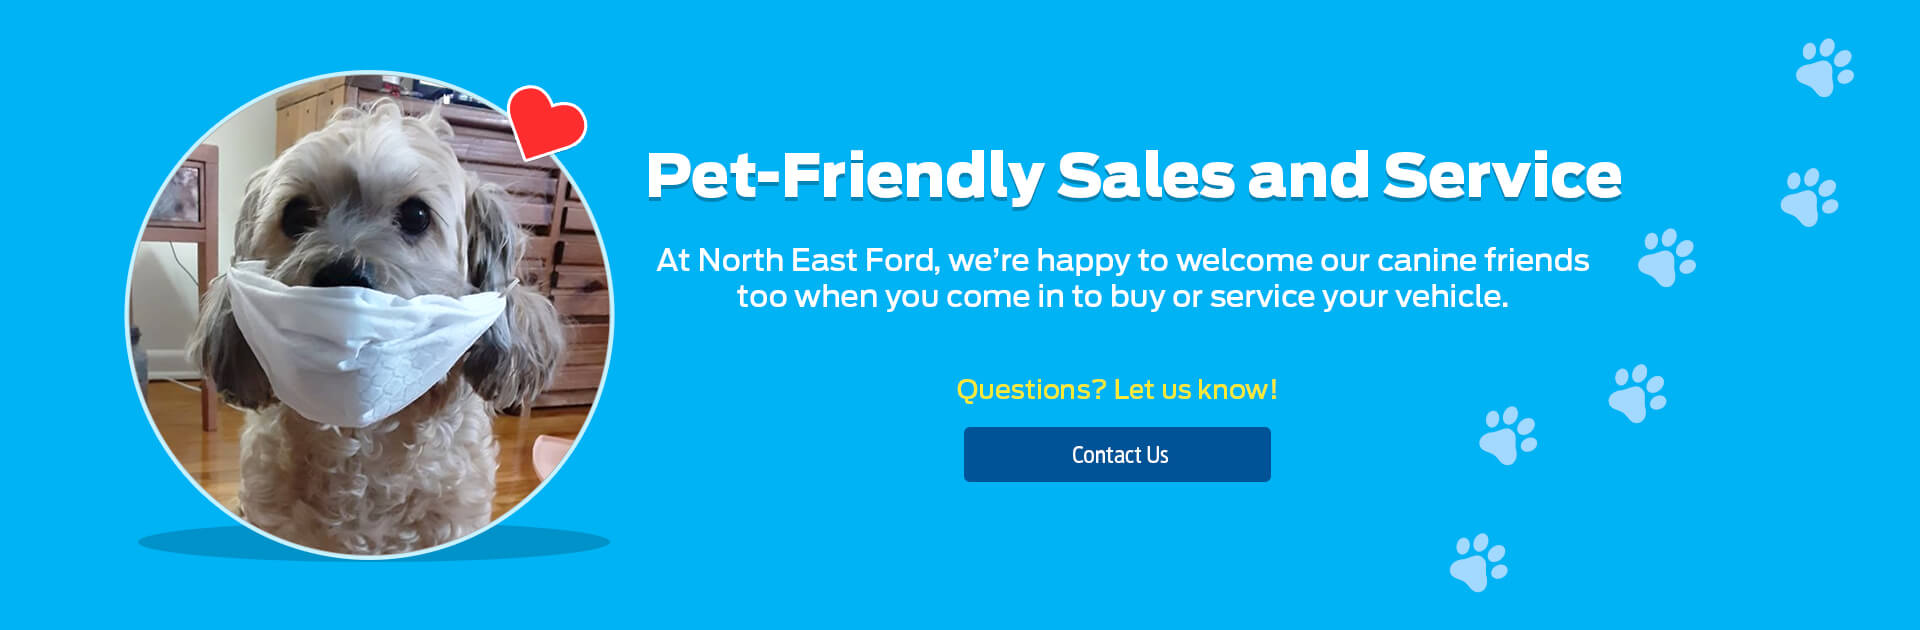 Northeast Ford Pet Friendly Banner 1